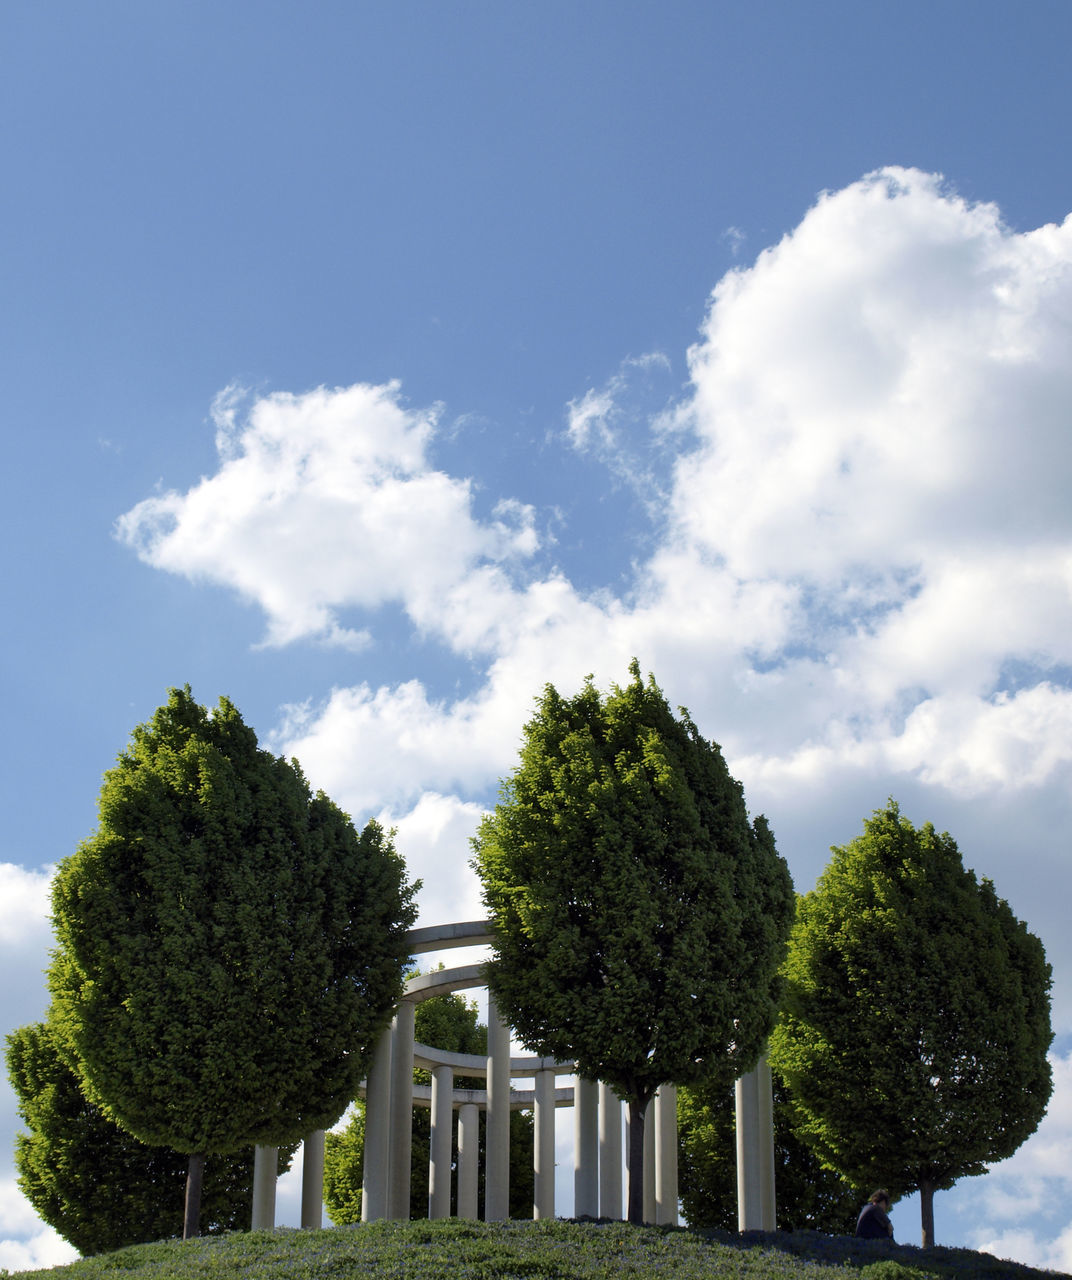 Trees at built structure on landscape against the sky